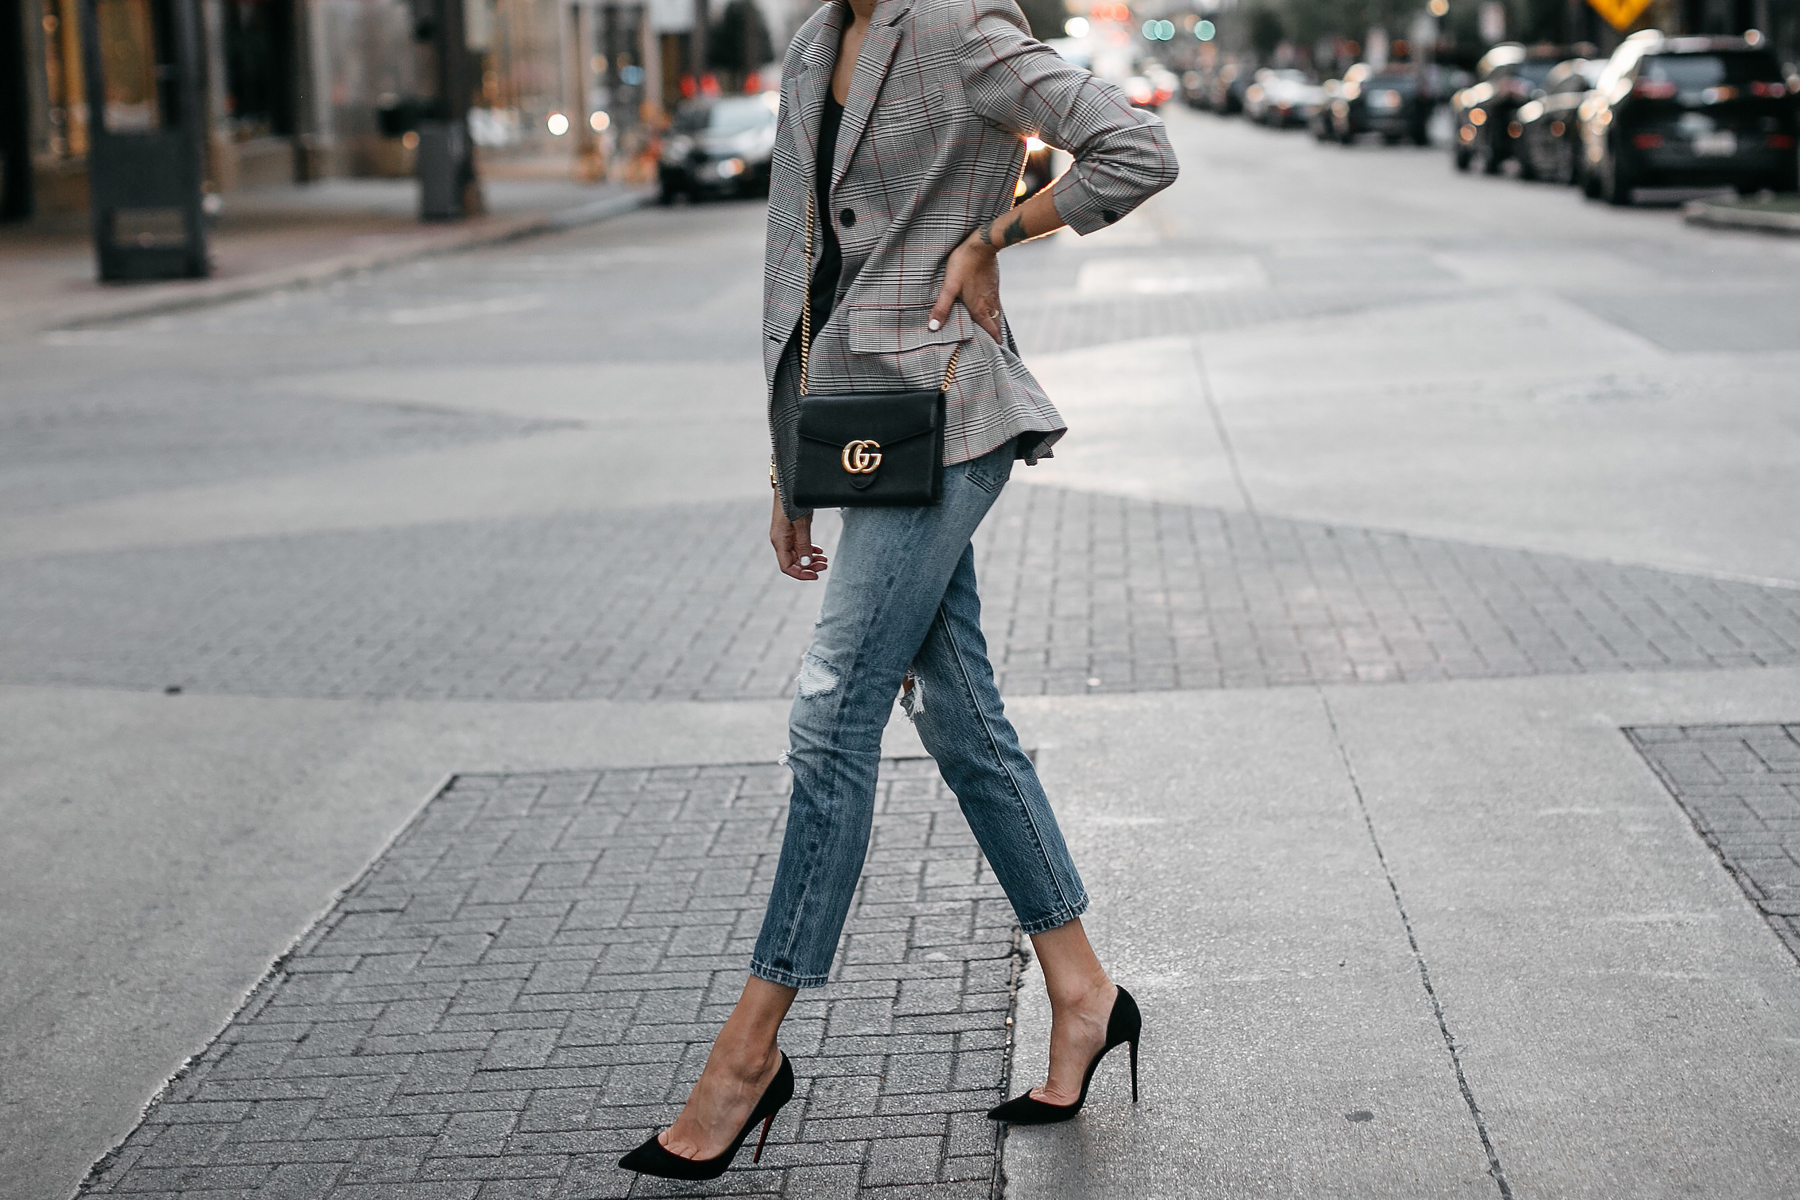 Zara Plaid Blazer Denim Ripped Jeans Gucci Marmont Handbag Christian Louboutin Black Pumps Fashion Jackson Dallas Blogger Fashion Blogger Street Style